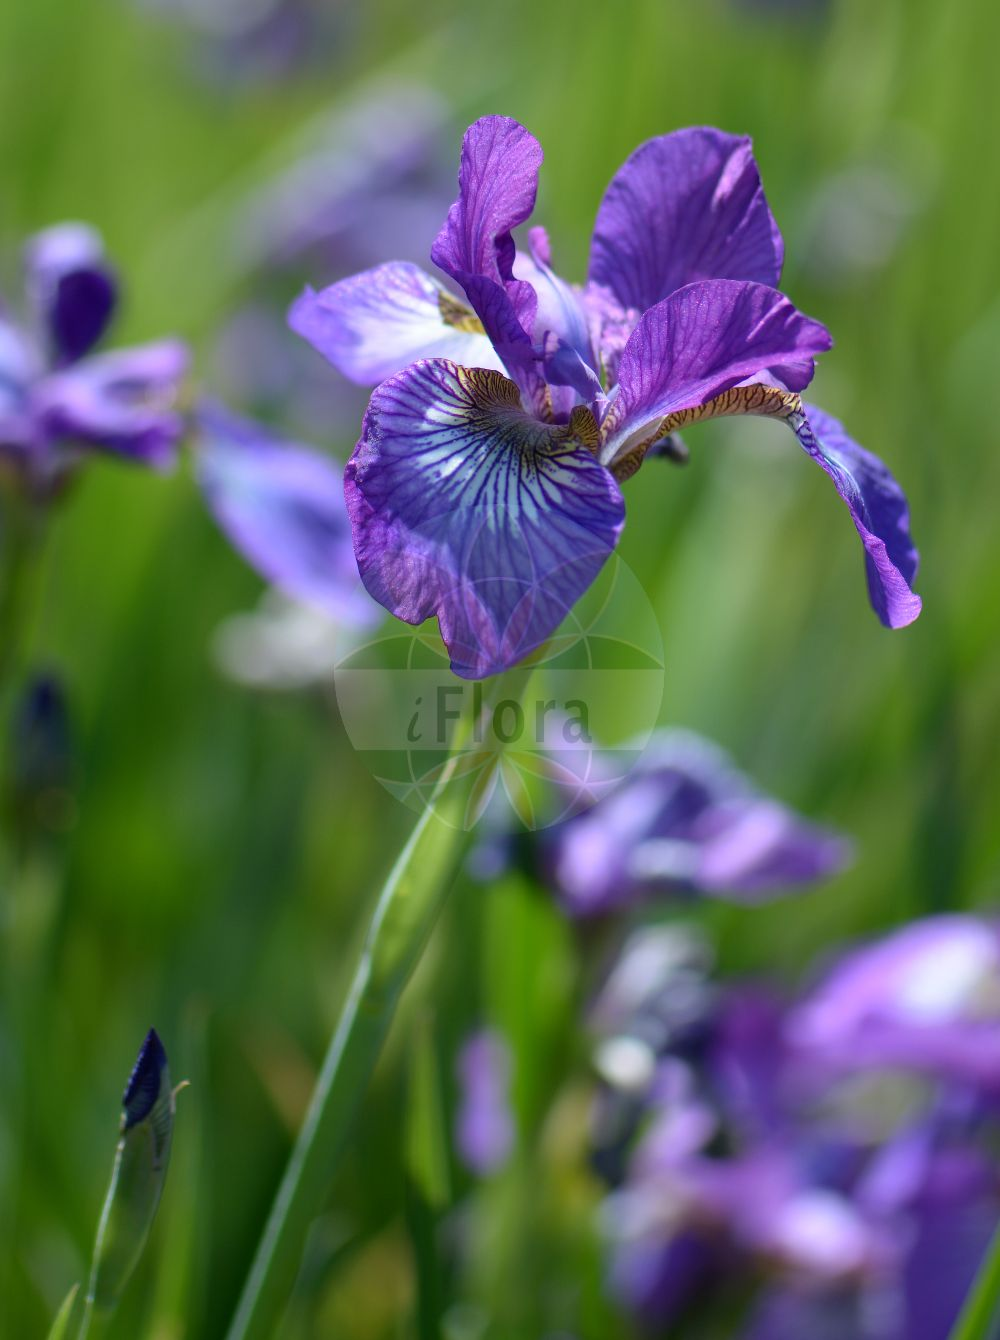 Foto von Iris germanica (Deutsche Schwertlilie - Bearded Iris). Das Foto wurde in Goeteborg, Schweden aufgenommen. ---- Photo of Iris germanica (Deutsche Schwertlilie - Bearded Iris).The picture was taken in Gothenburg, Sweden. (Iris germanica,Deutsche Schwertlilie,Bearded Iris,Common Iris,German Iris,Iris,Schwertlilie,Iris,Iridaceae,Schwertliliengewaechse,Iris family)